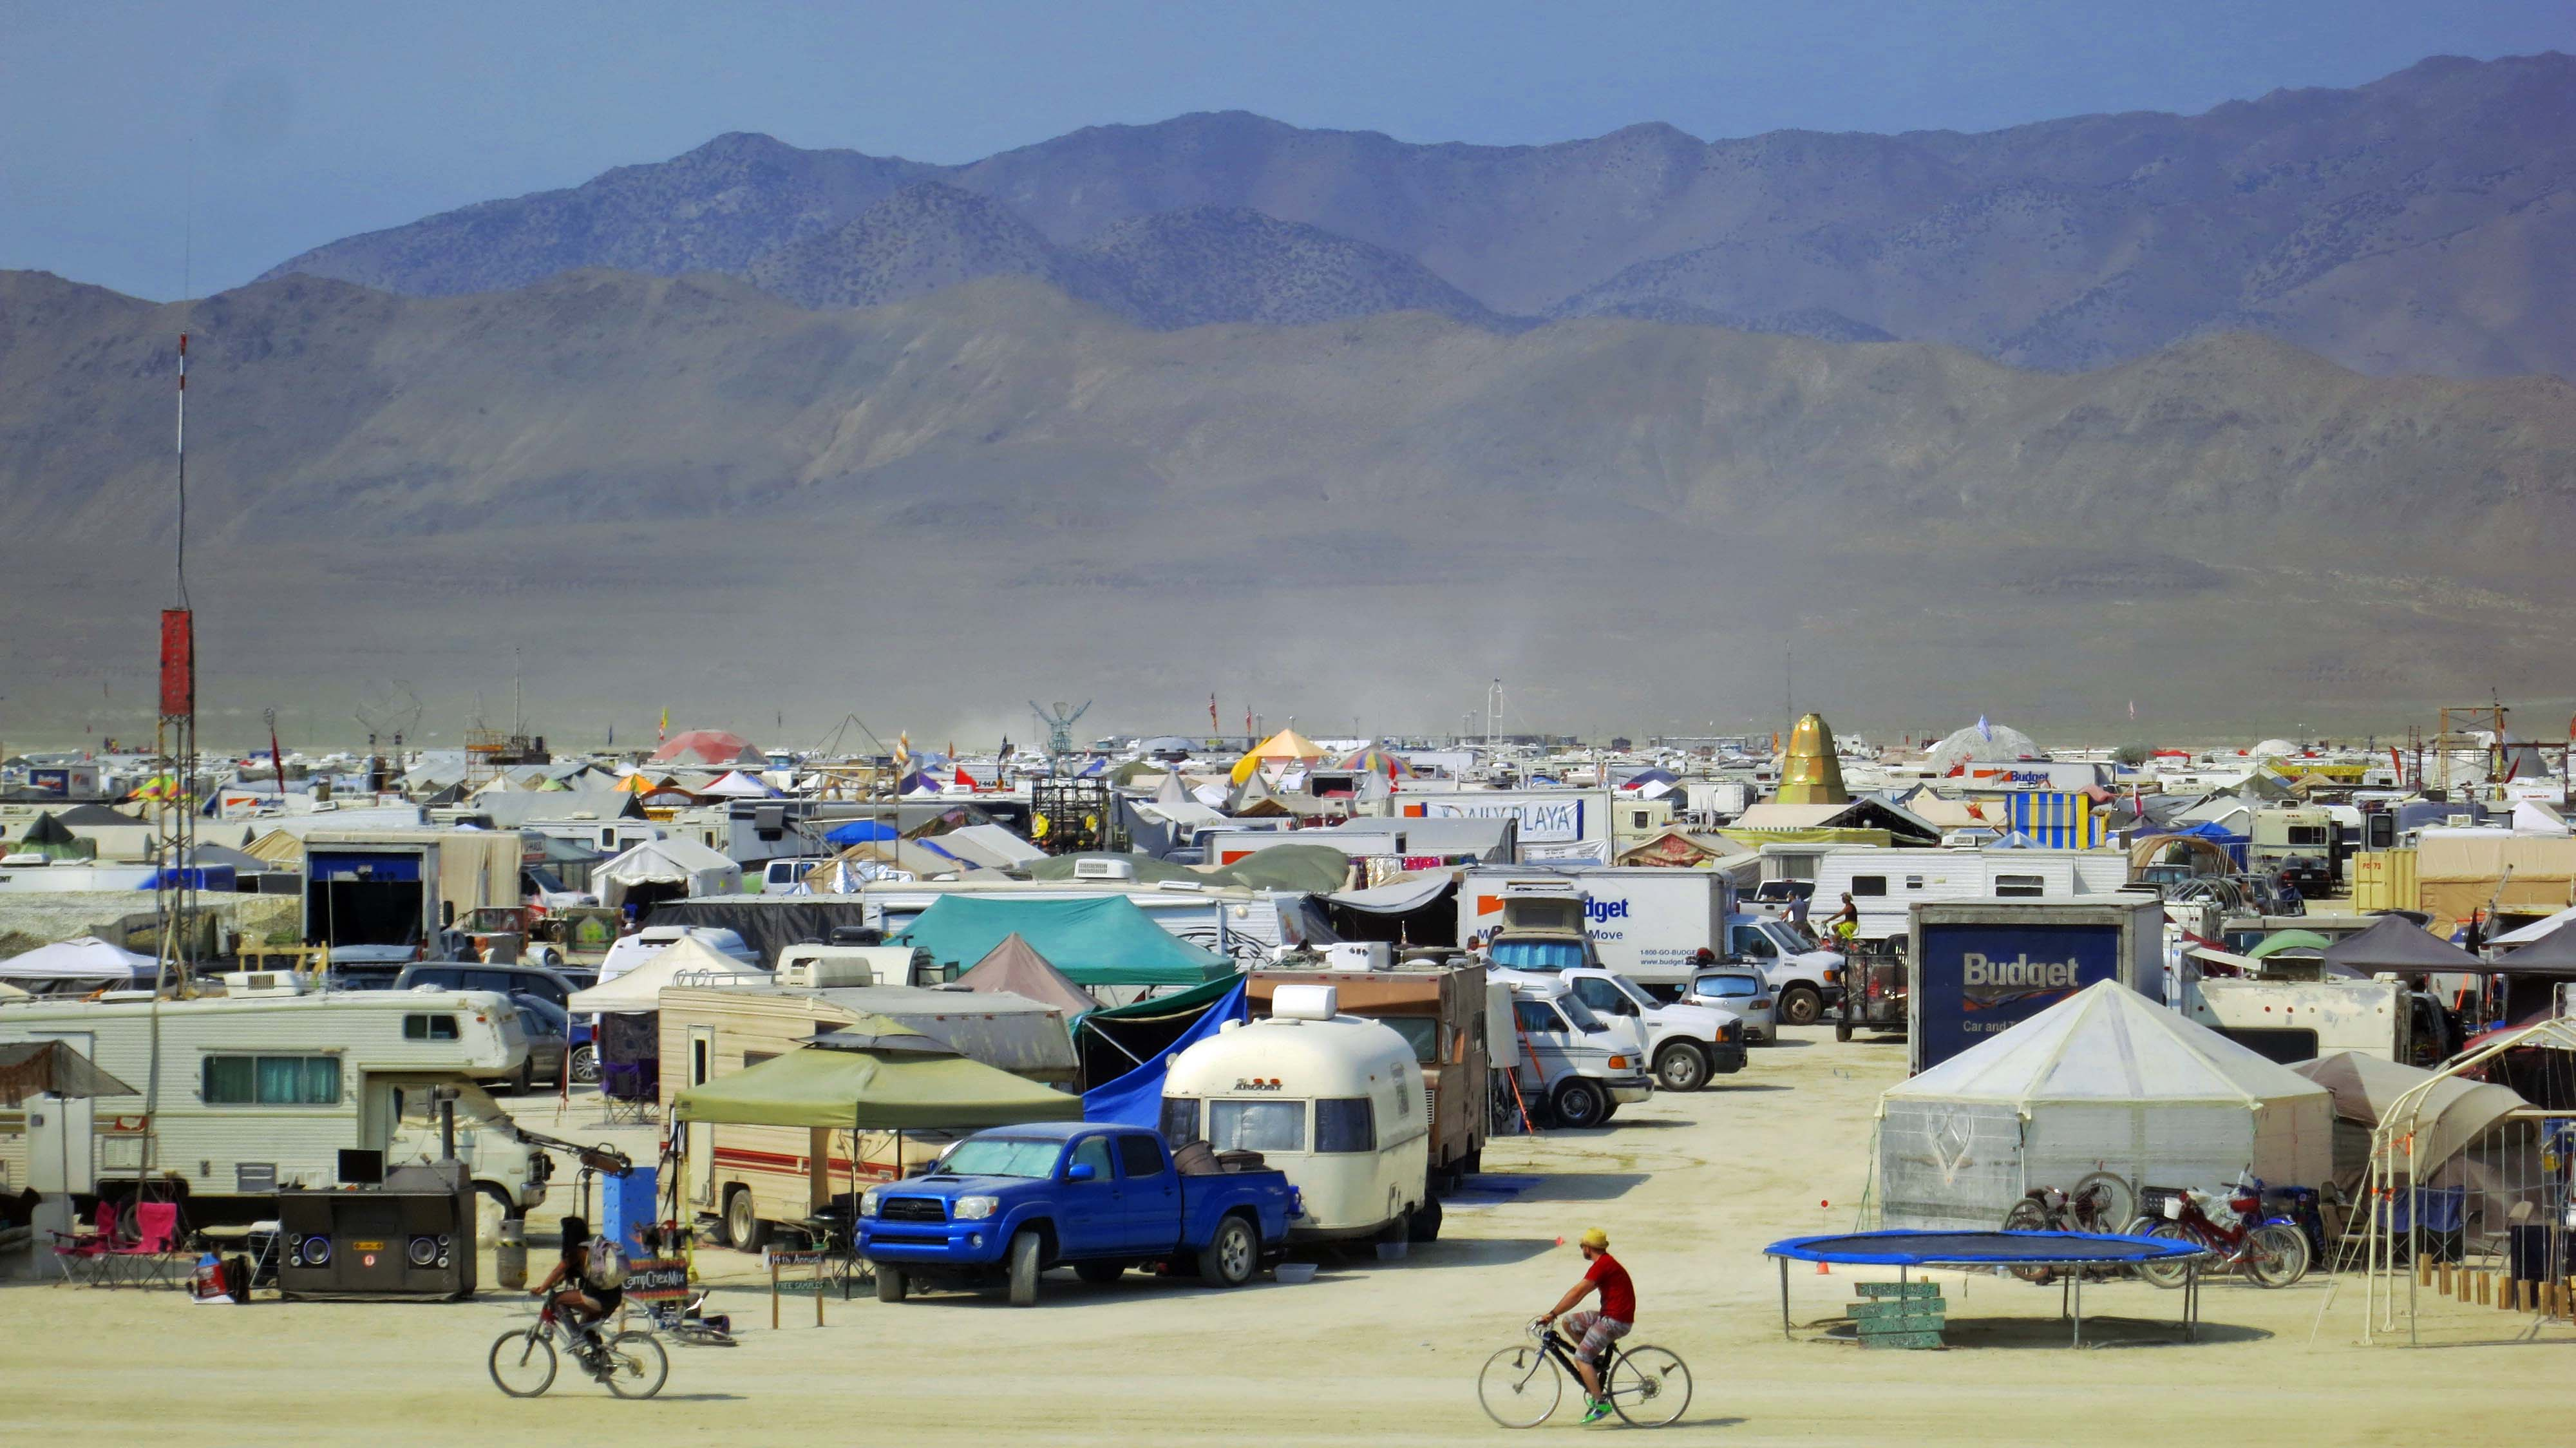 People come from all over the world to participate in Burning Man. Some set up an individual camp while others are members of large theme camps.